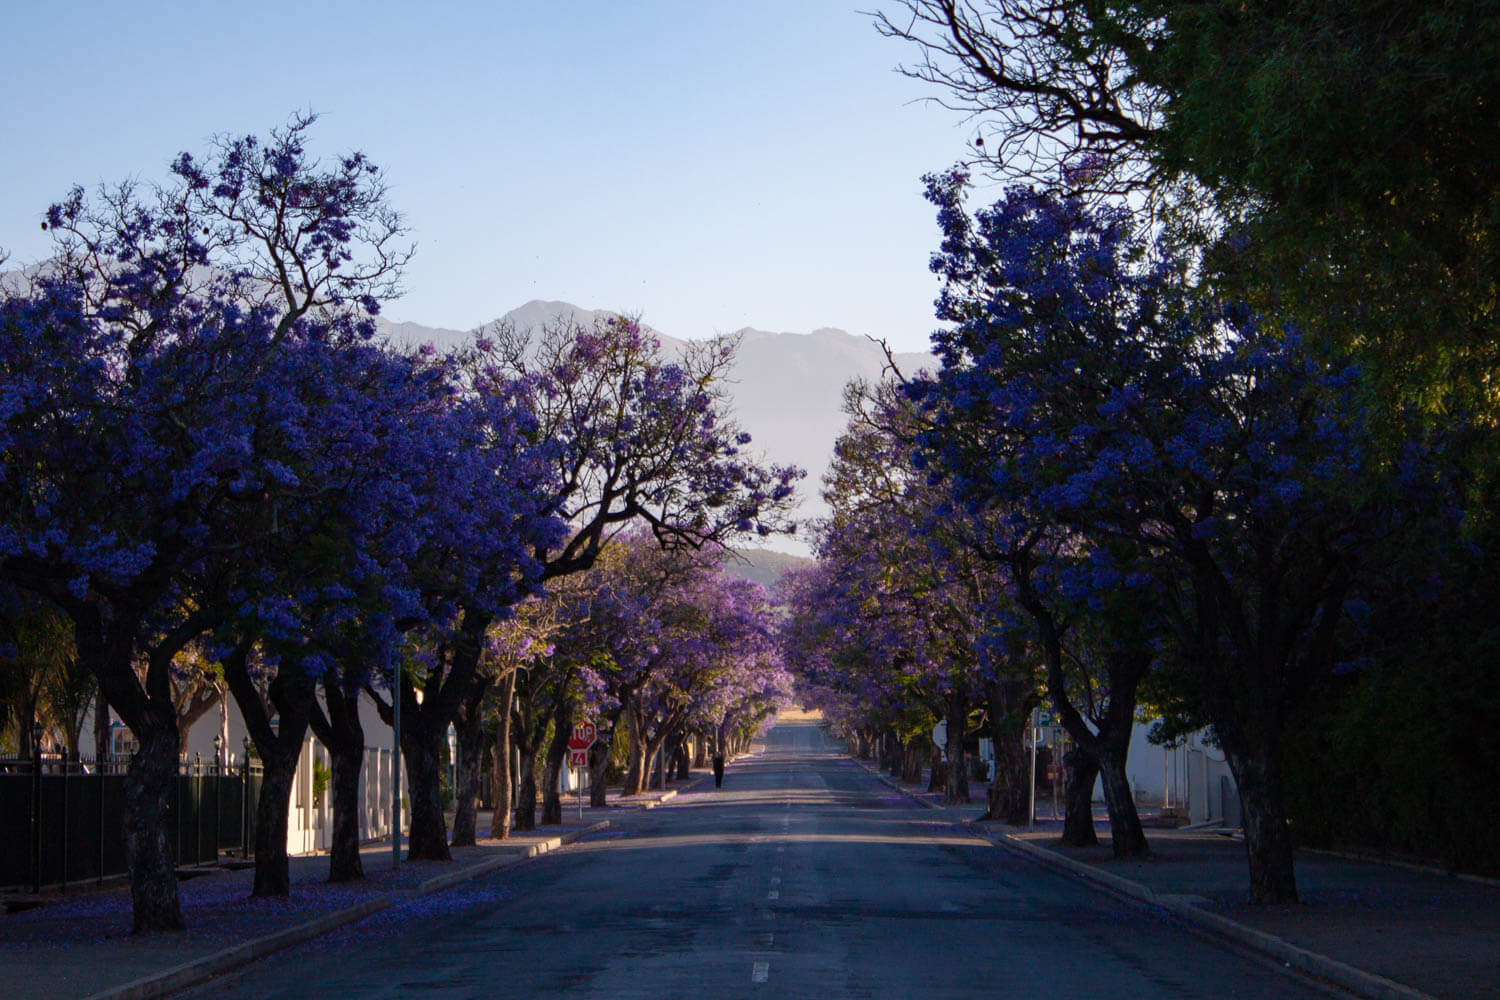 Empty street lined with flowering jacaranda trees